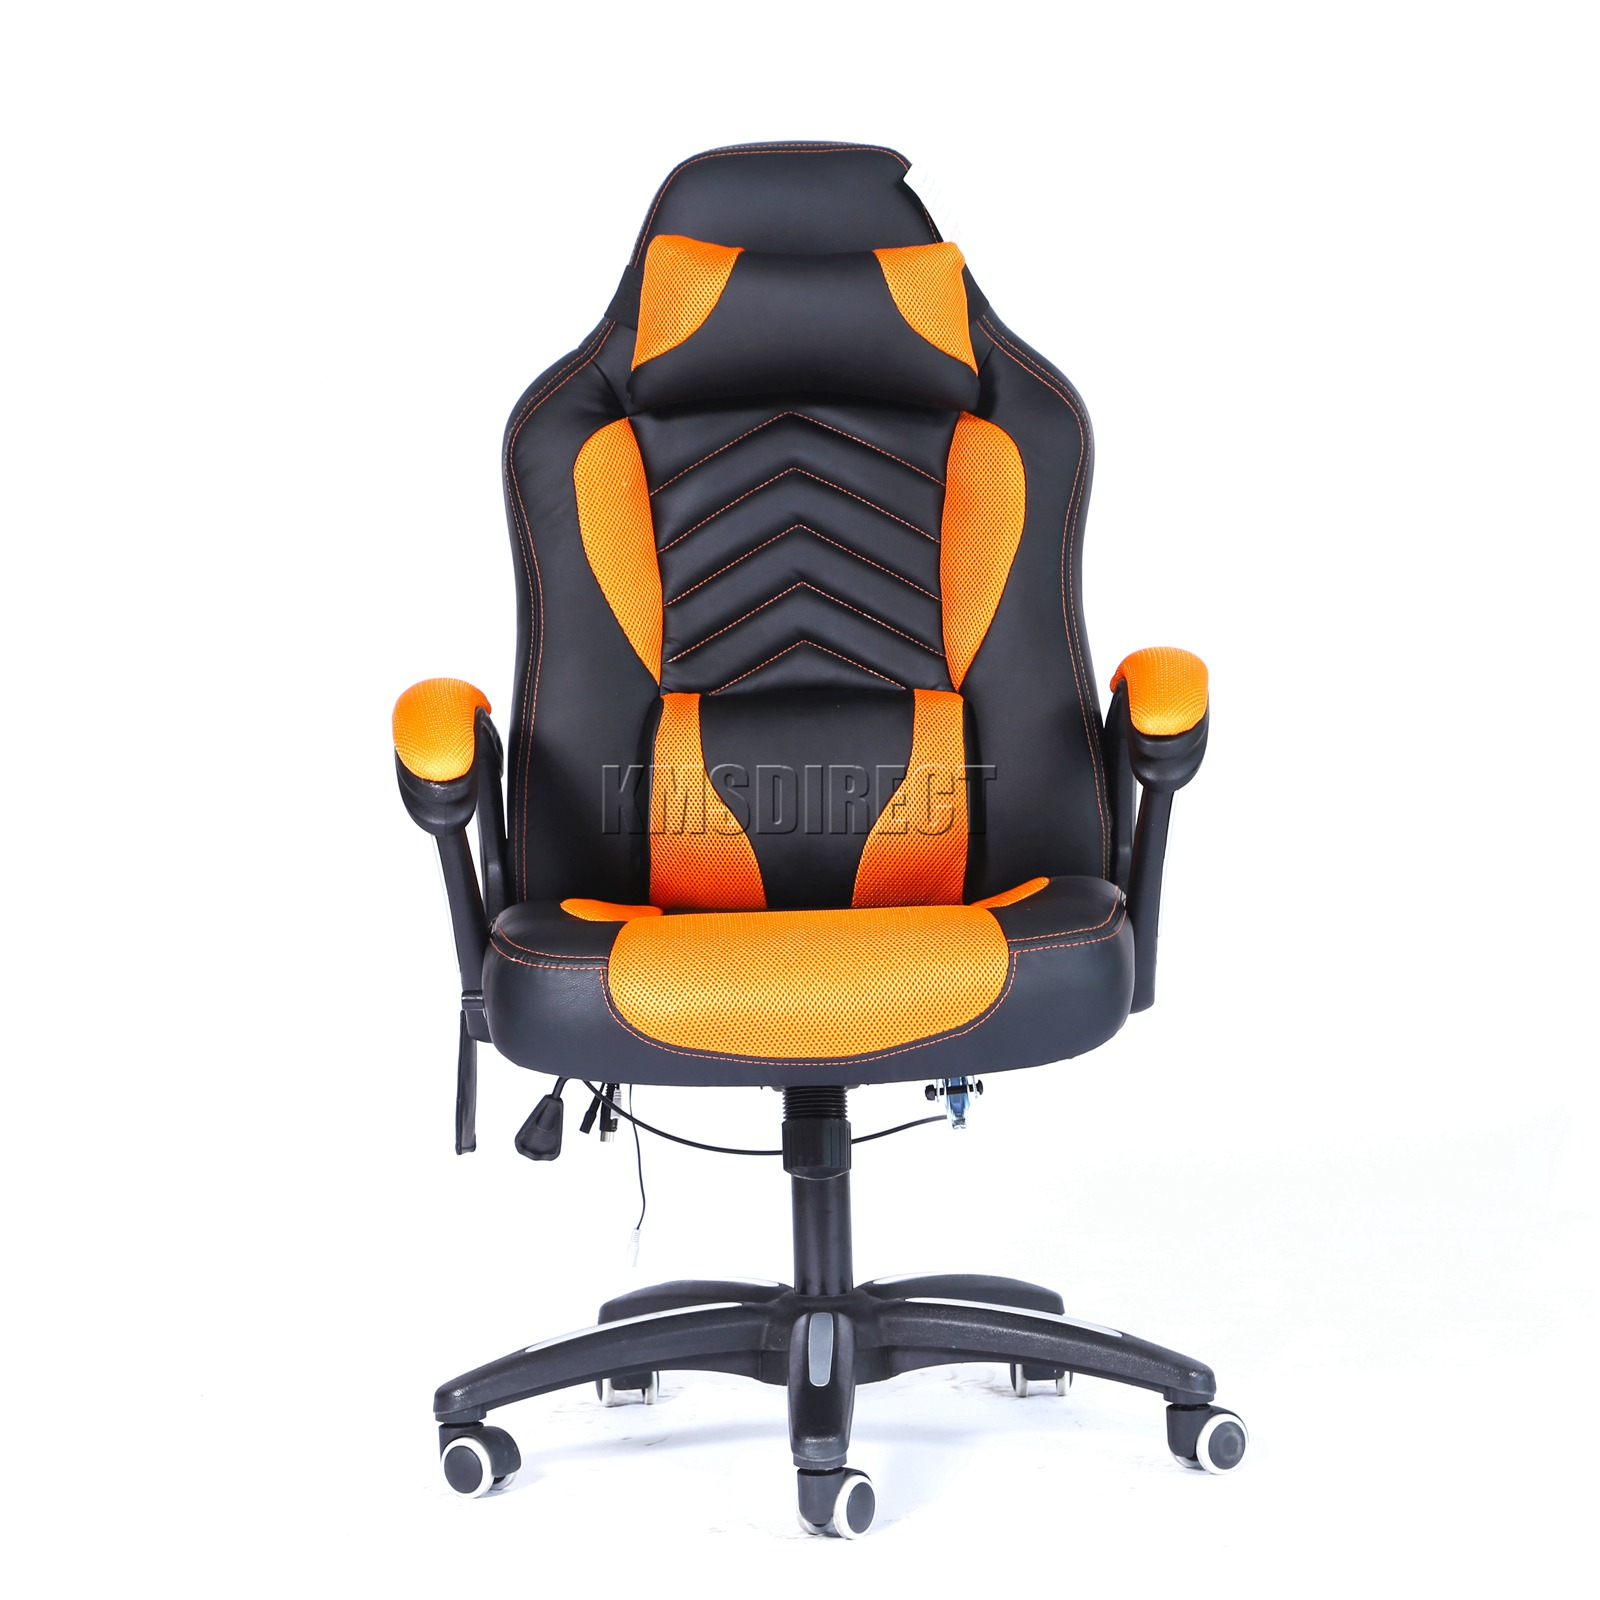 WestWood-Heated-Massage-Office-Chair-Gaming-amp-Computer-Recliner-Swivel-MC09 thumbnail 26